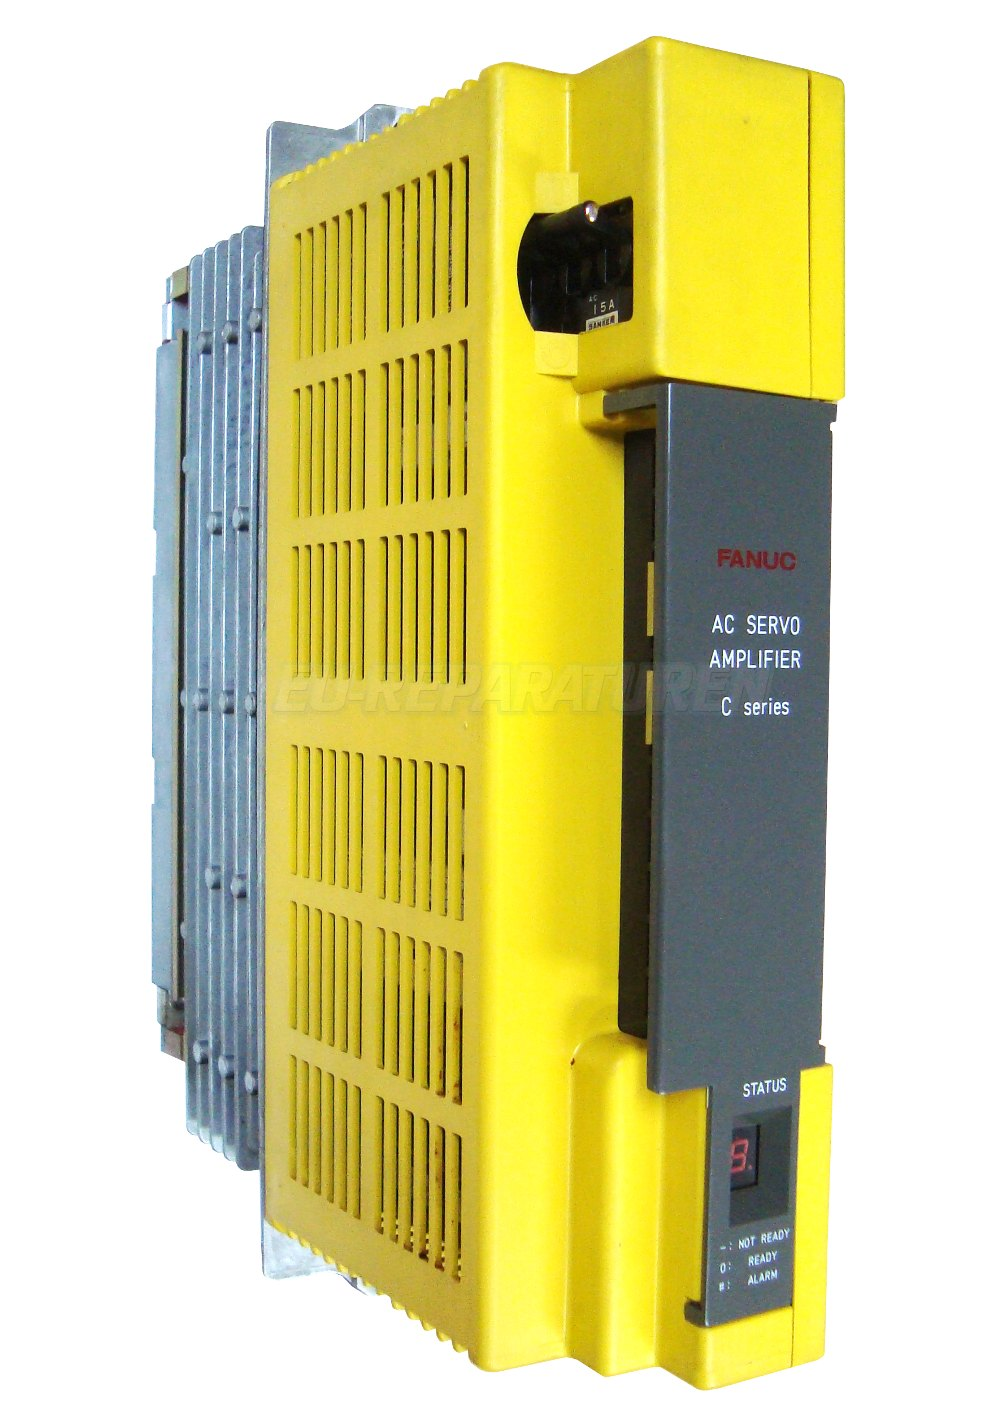 REPARATURSERVICE A06B-6066-H244 FANUC SERVOANTRIEB C-SERIES ... on